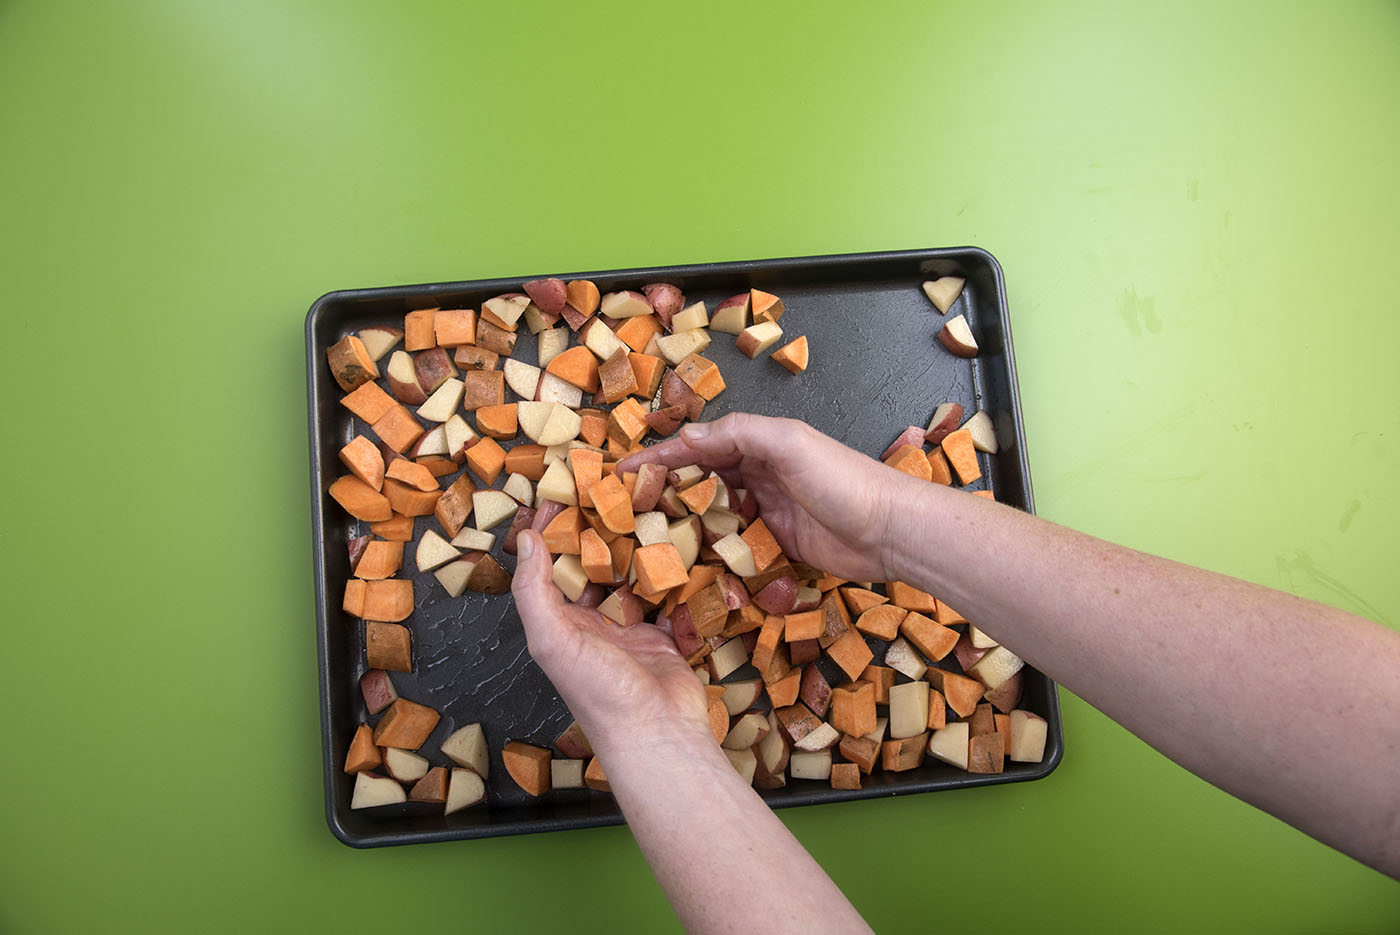 Cubed Irish and sweet potatoes on a baking sheet.